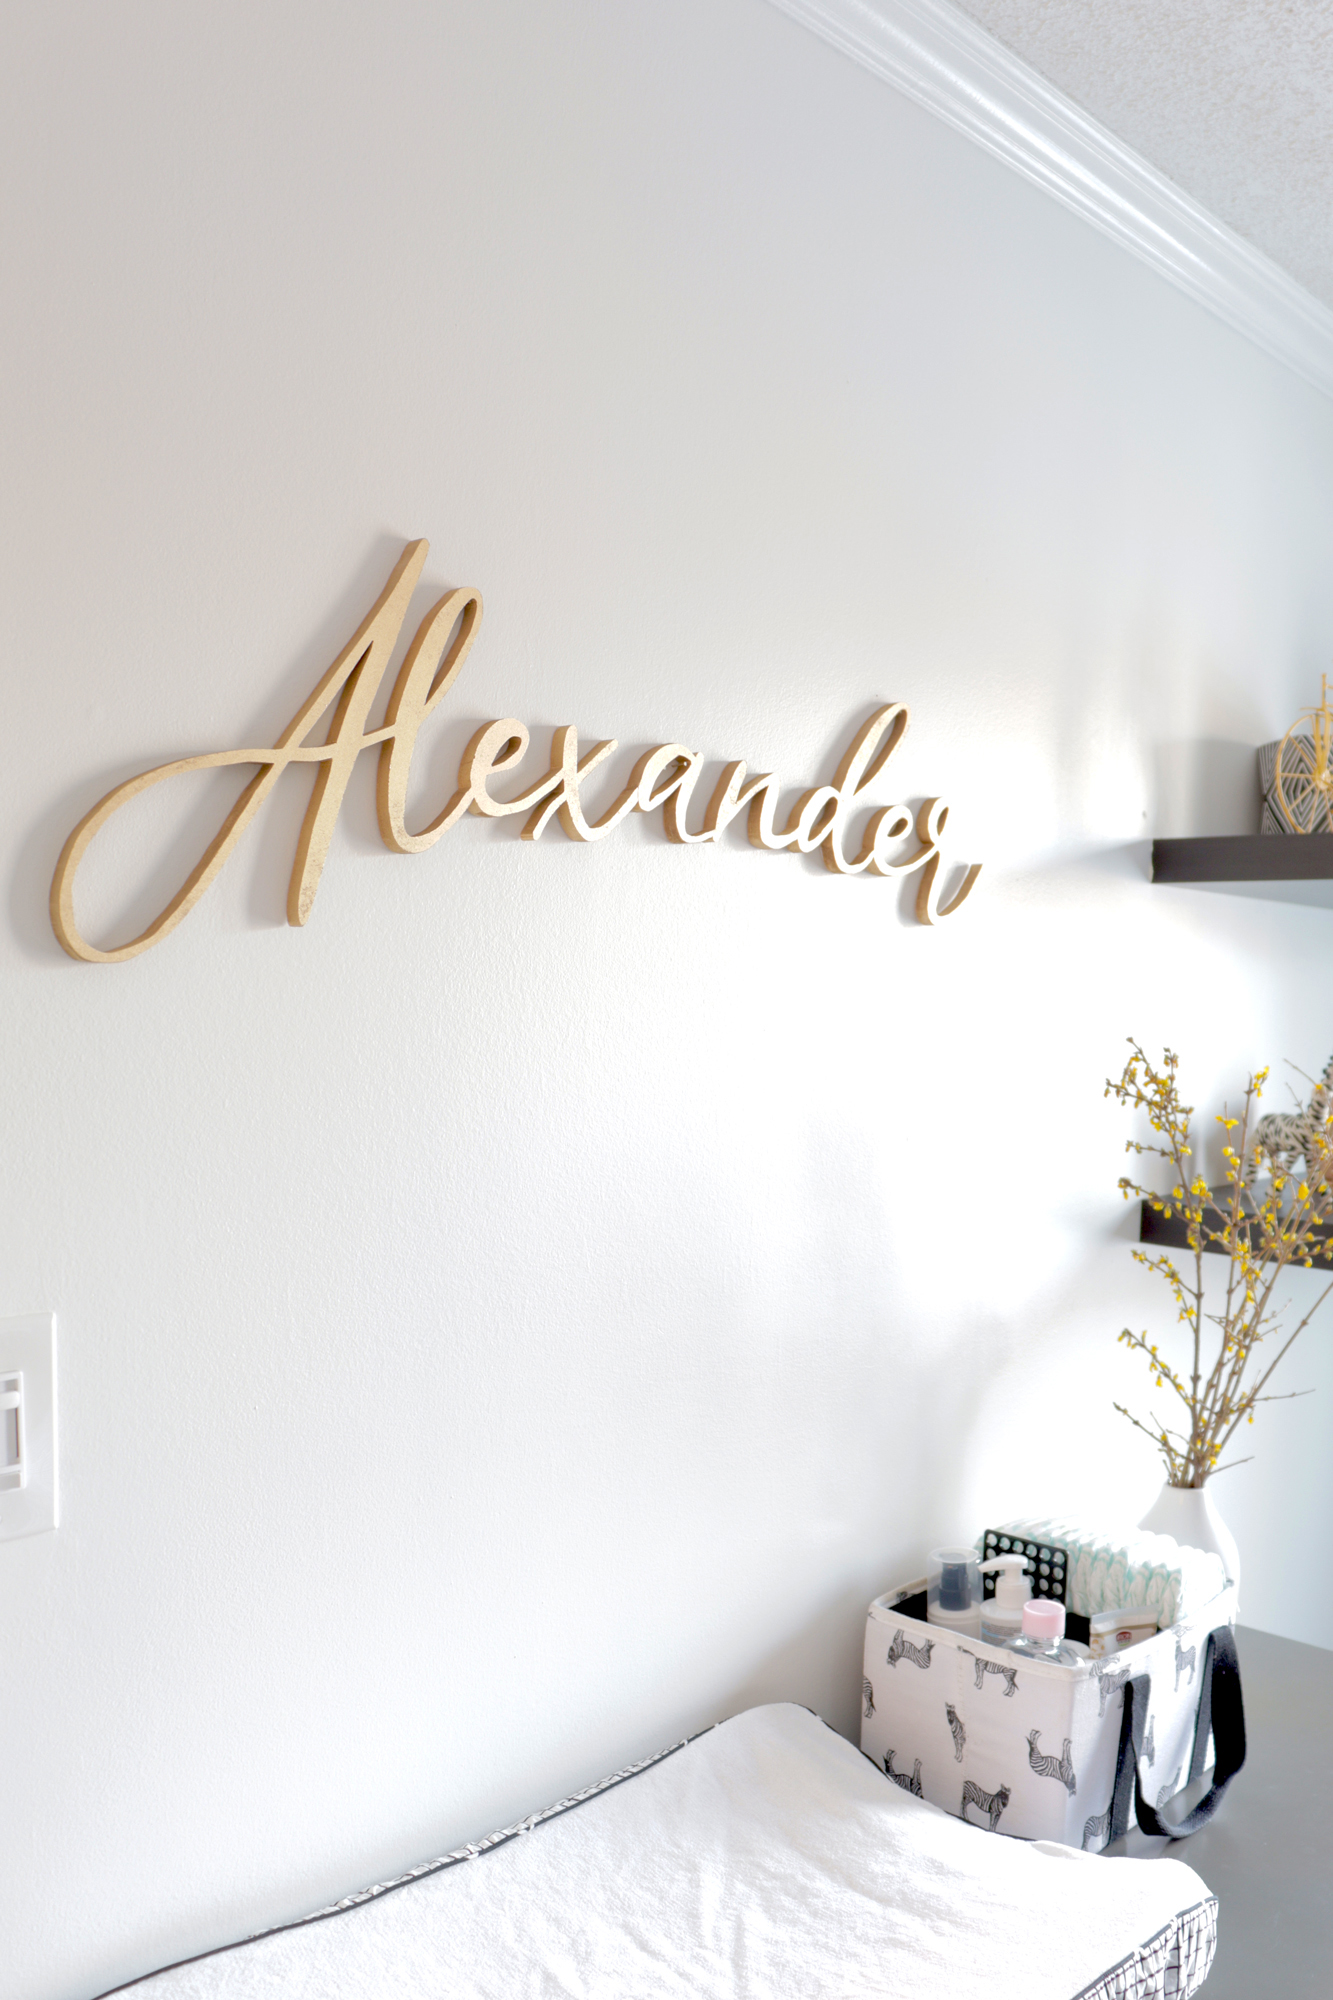 Custom handmade 'Alexander' name sign provides a sweet introduction for baby A into his new room